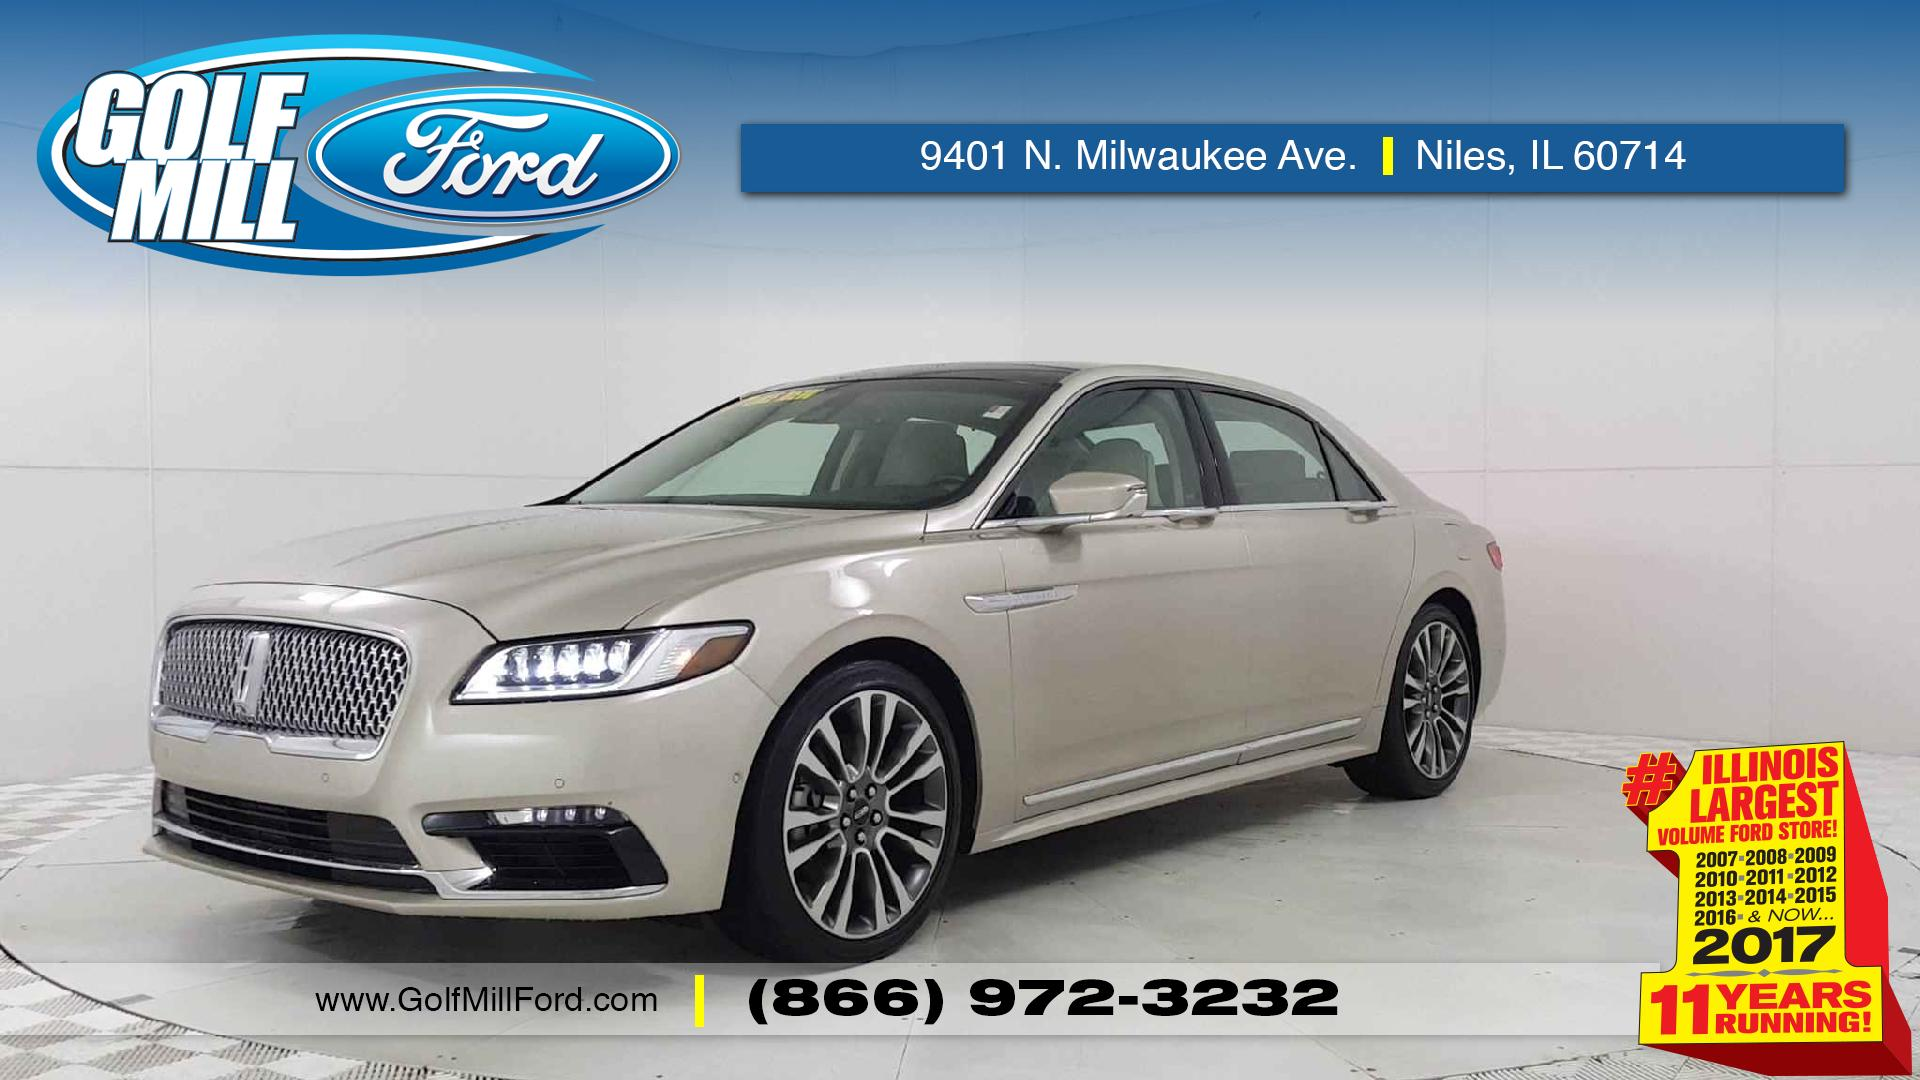 used cars for sale near me ford elegant used lincoln for sale in niles il golf mill ford